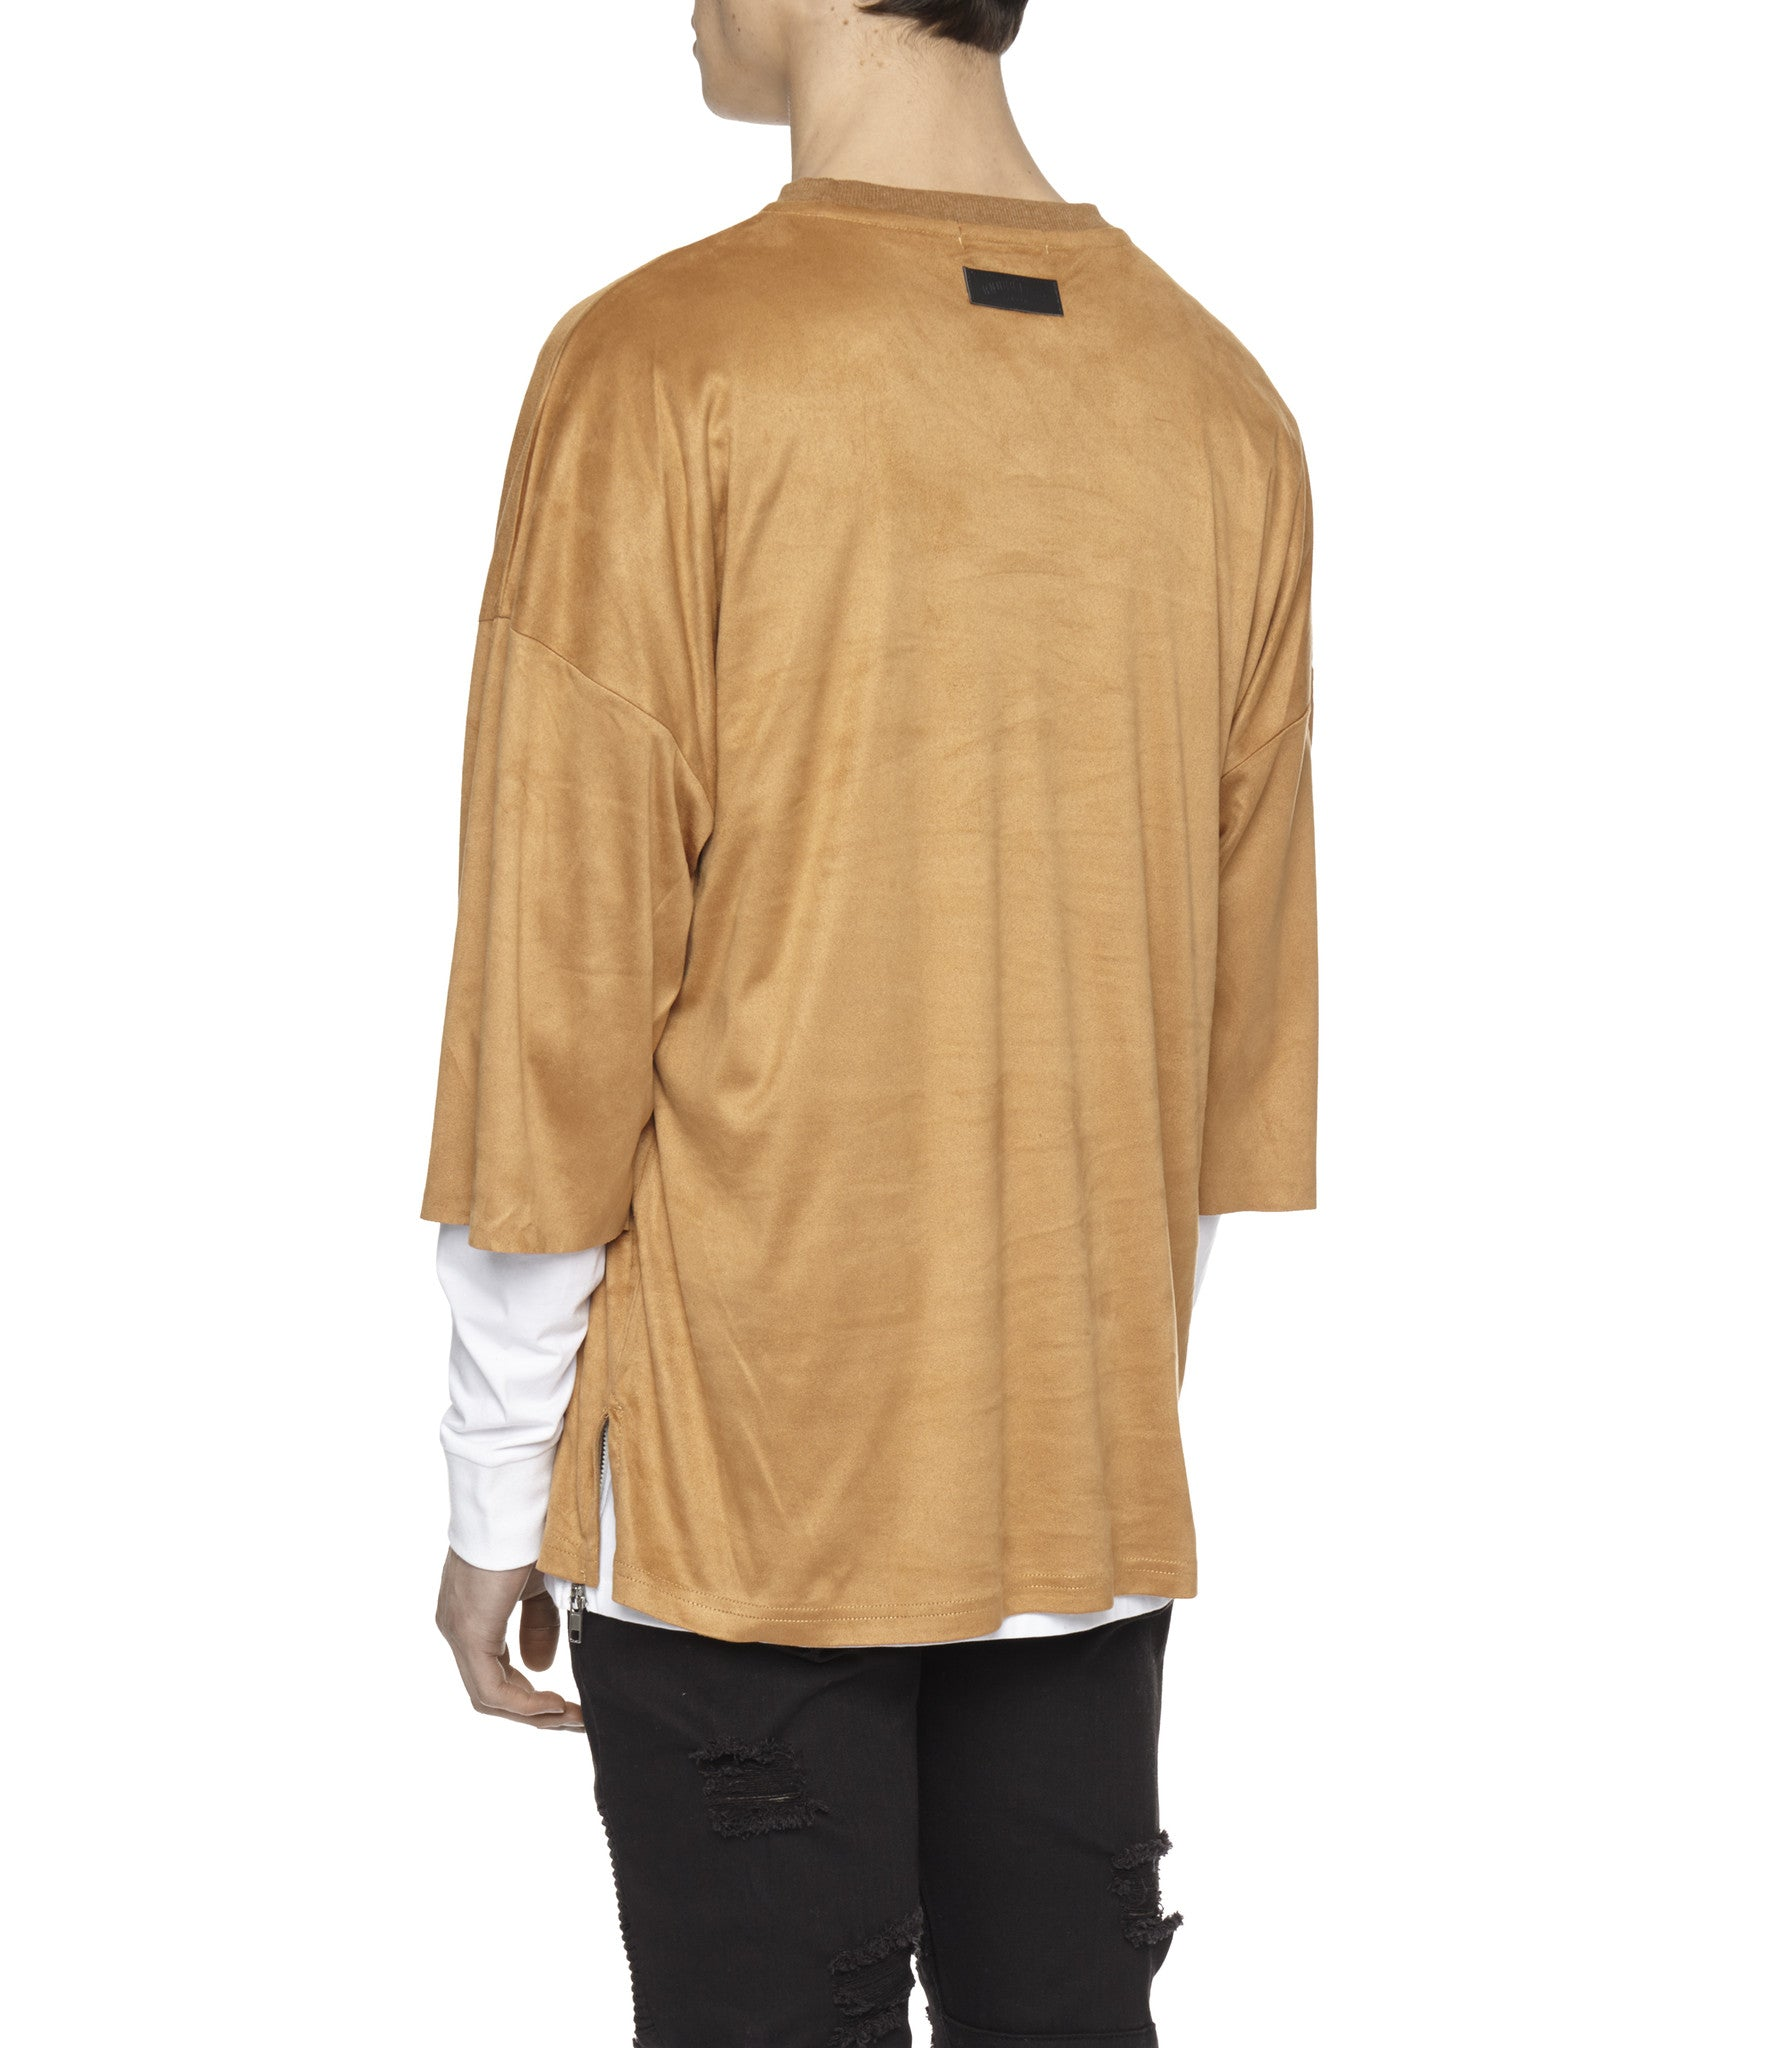 TS302 Suede Oversized Box Tee - Tan - underated london - underatedco - 5